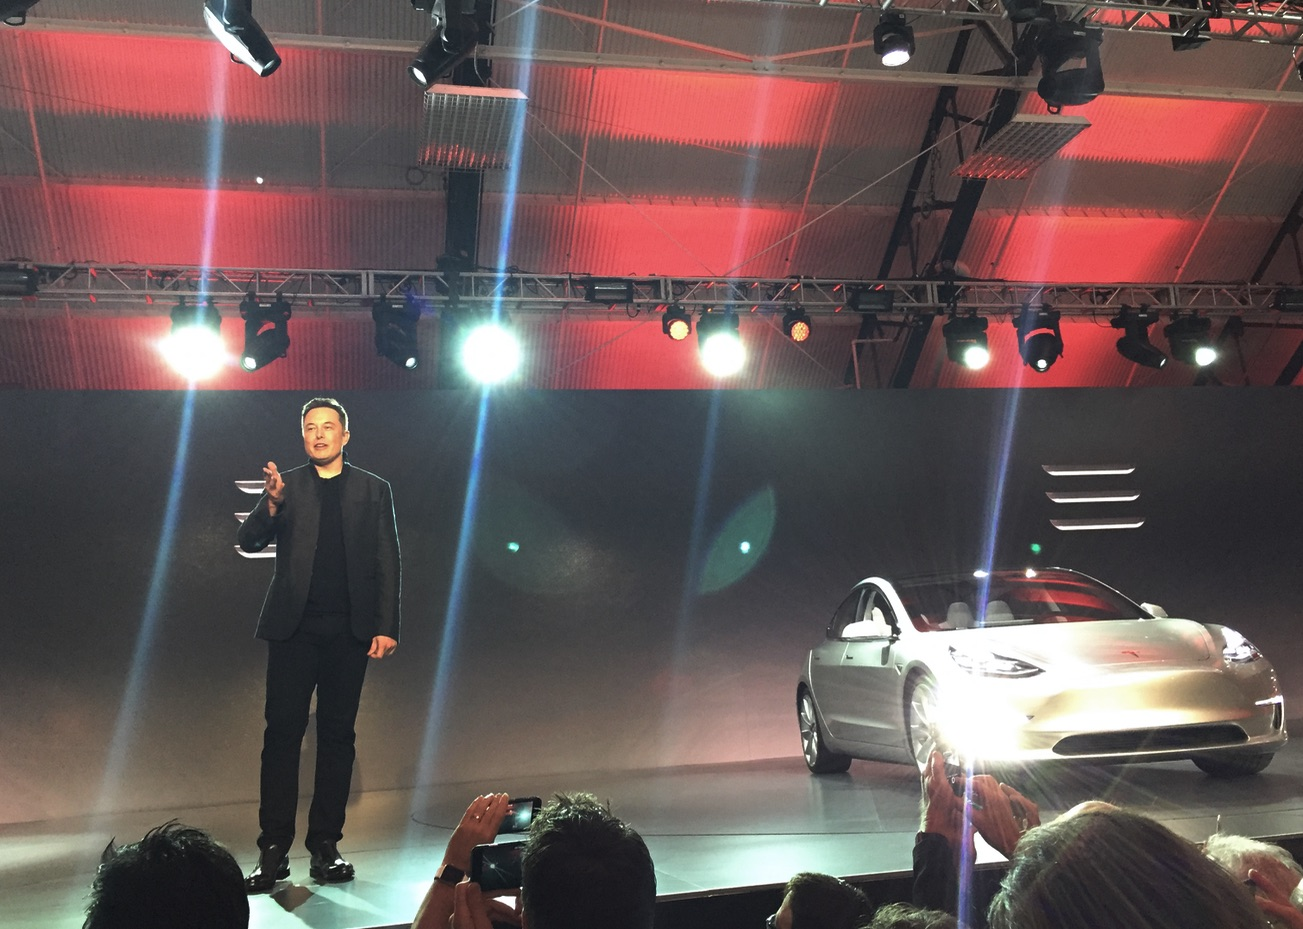 Elon Musk presents the Model 3 at Hawthorne, CA